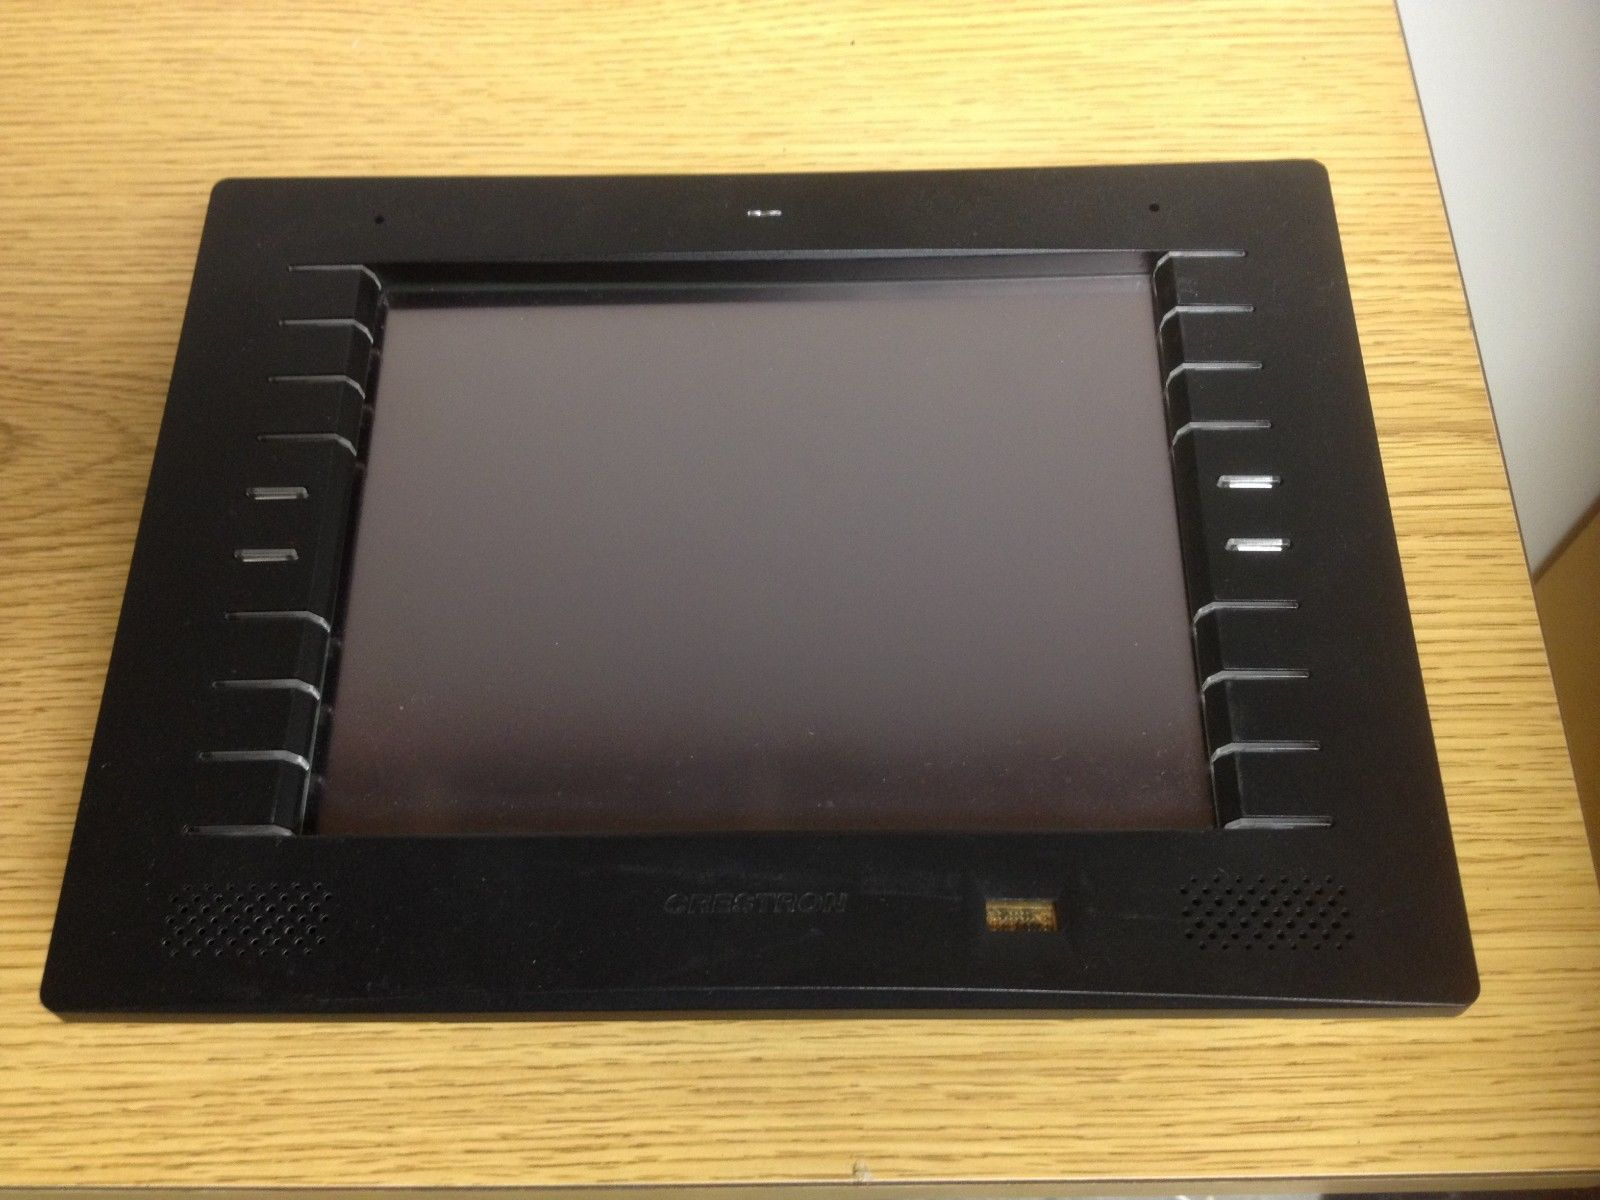 Crestron Tpmc 8l Isys 8 4 Wall Mount Touch Panel Your